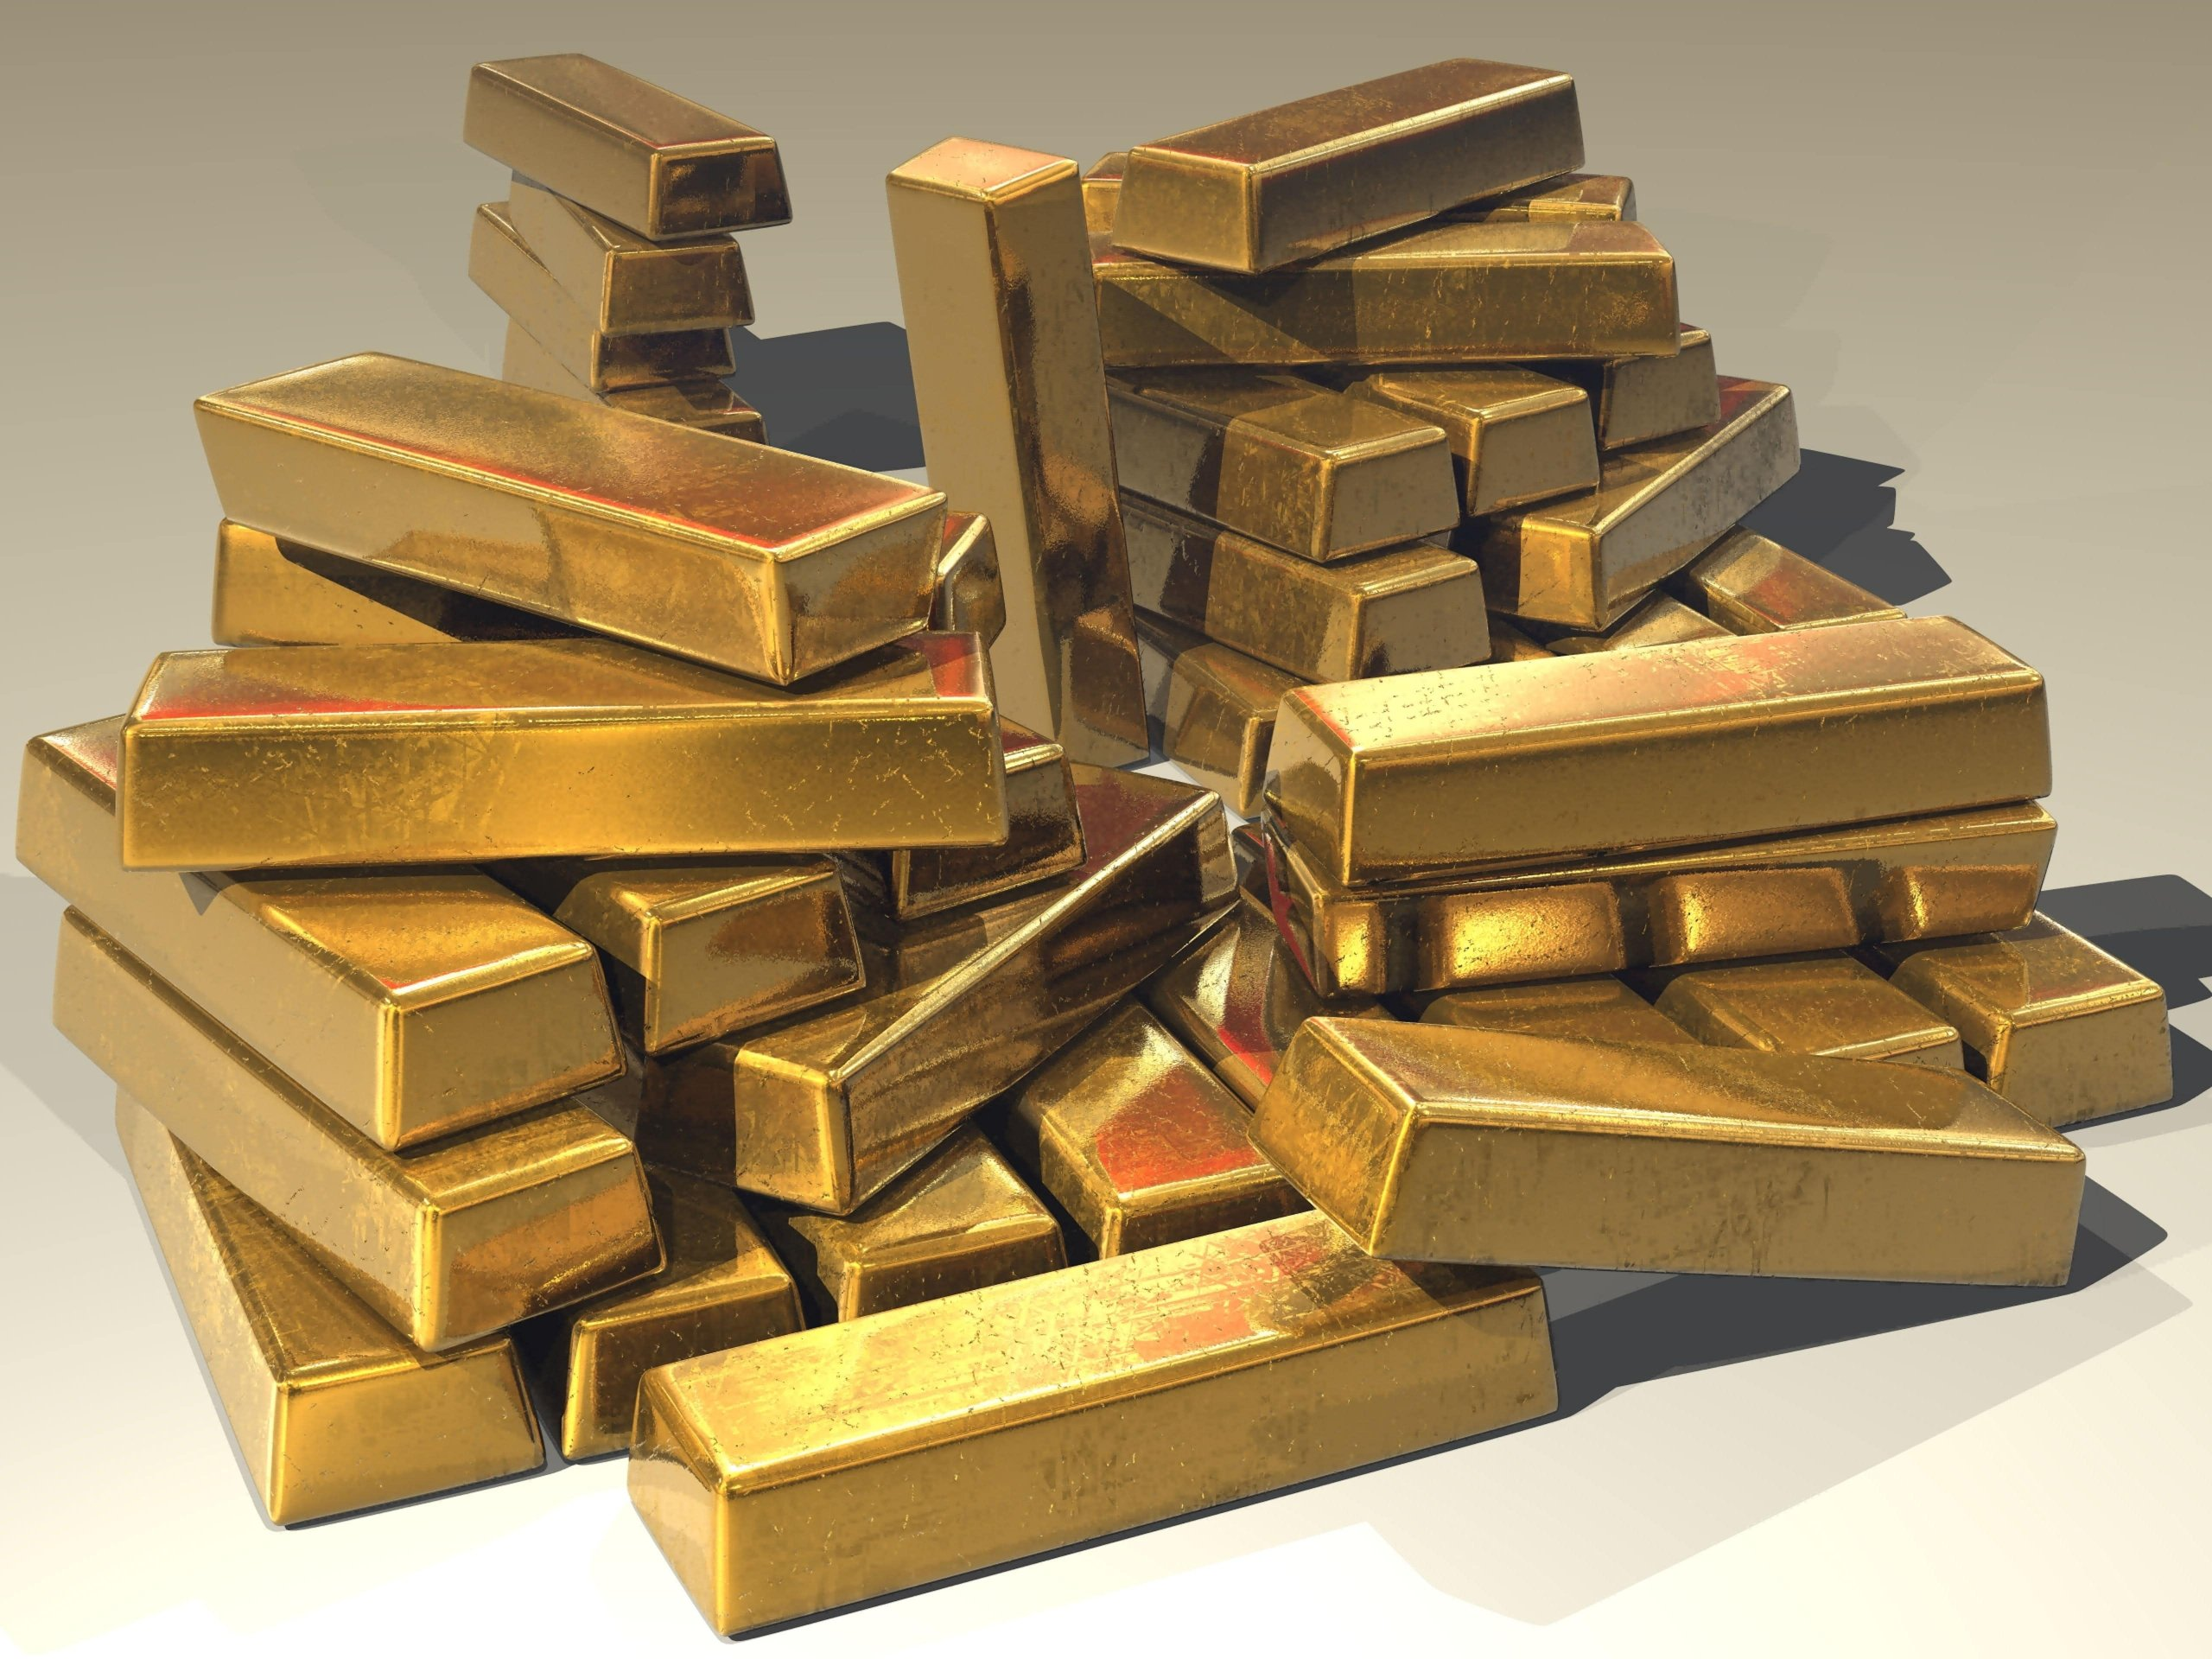 What's up with the price of gold?